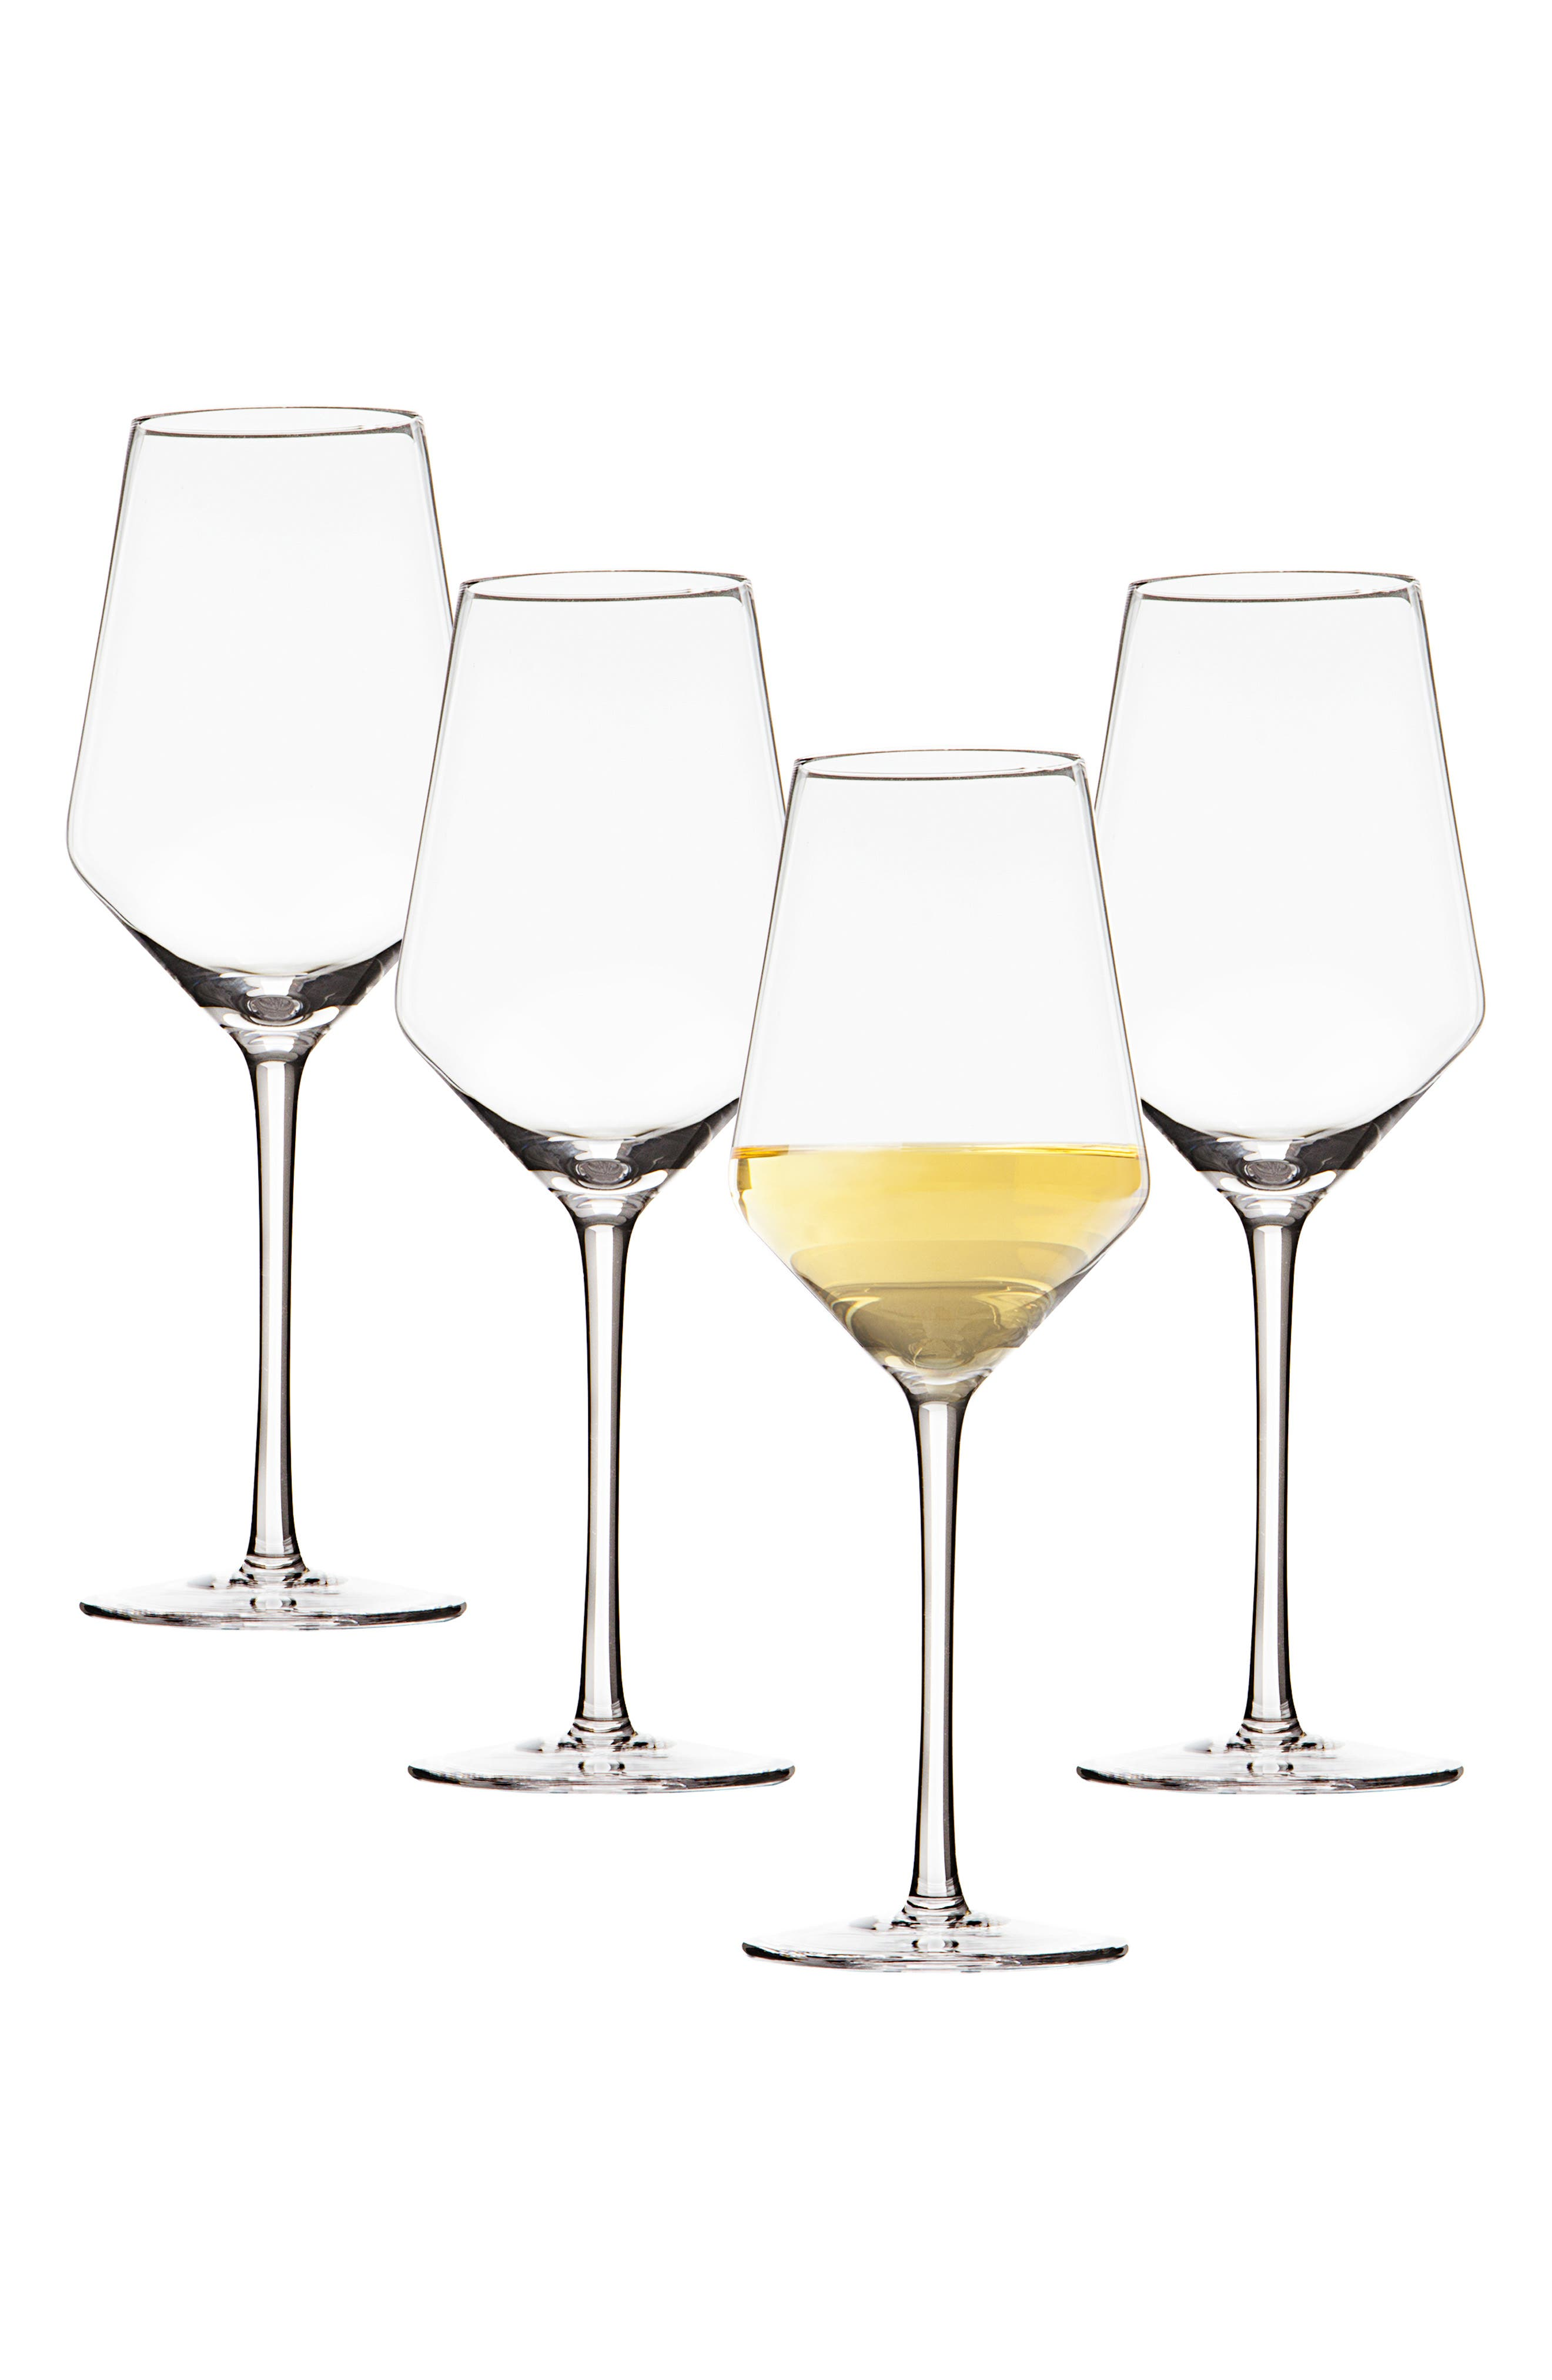 Estate Collection Set of 4 Monogram White Wine Glasses,                         Main,                         color, 100